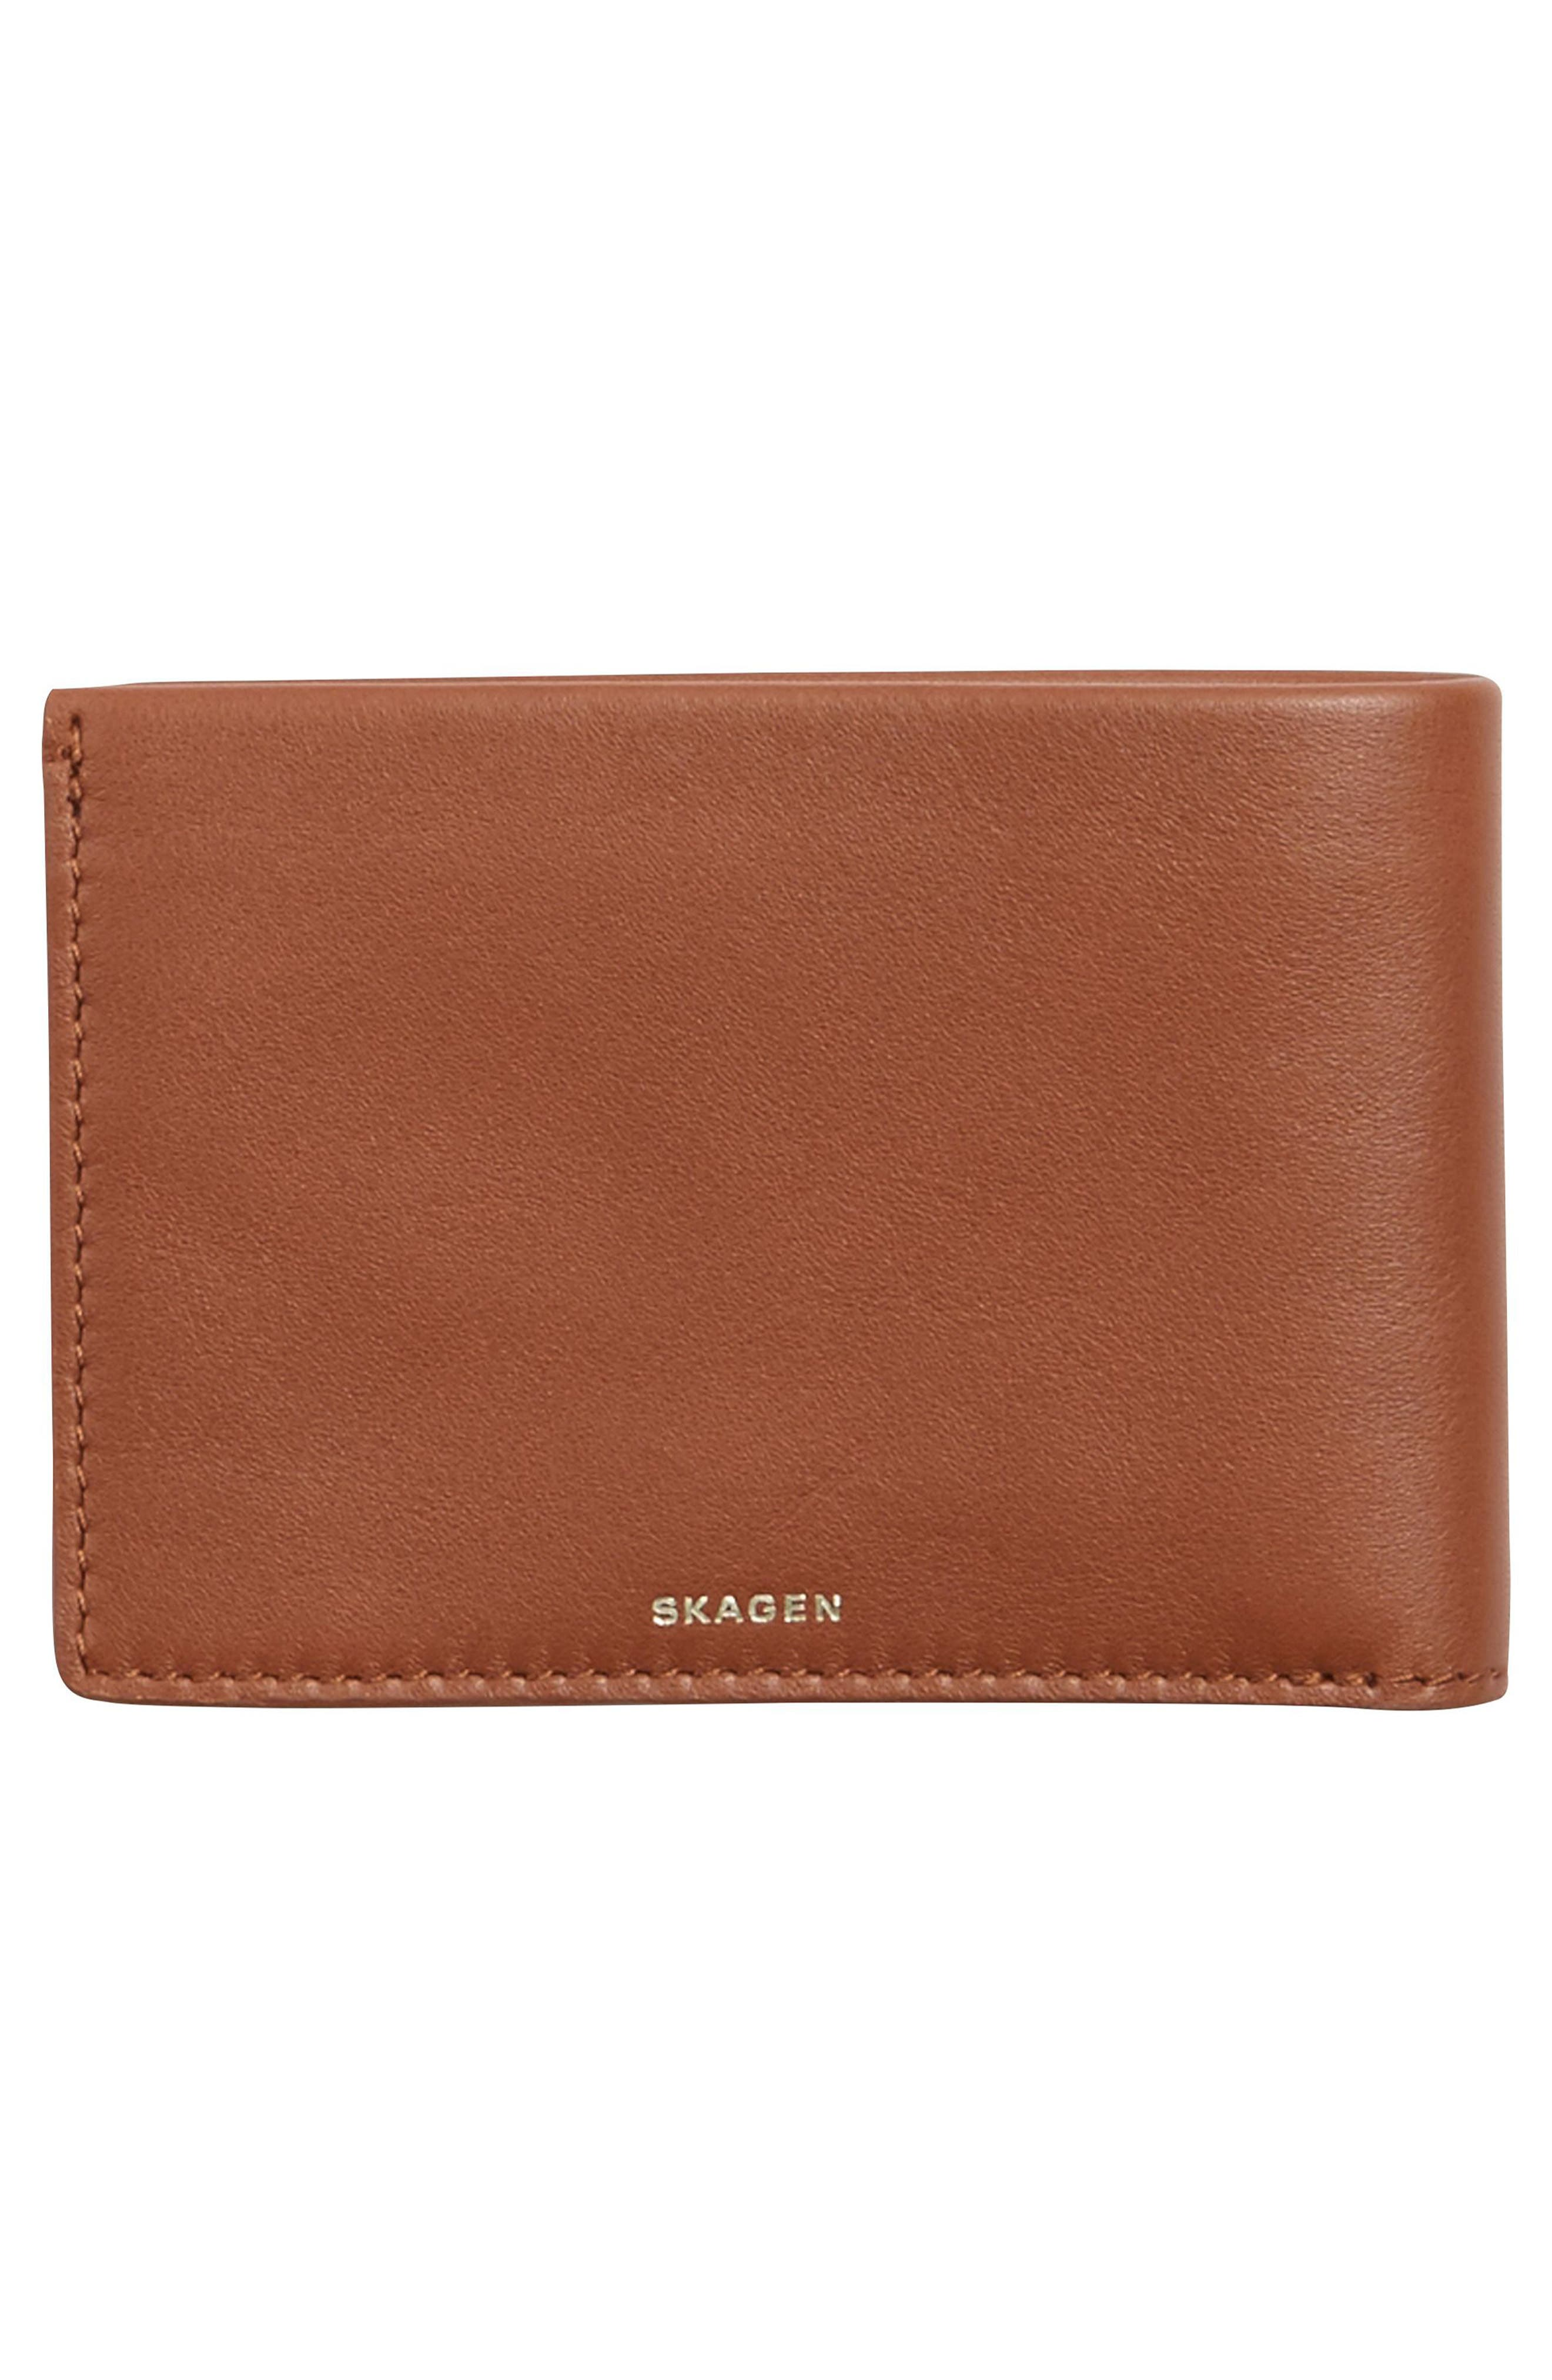 Leather Wallet,                             Alternate thumbnail 3, color,                             222